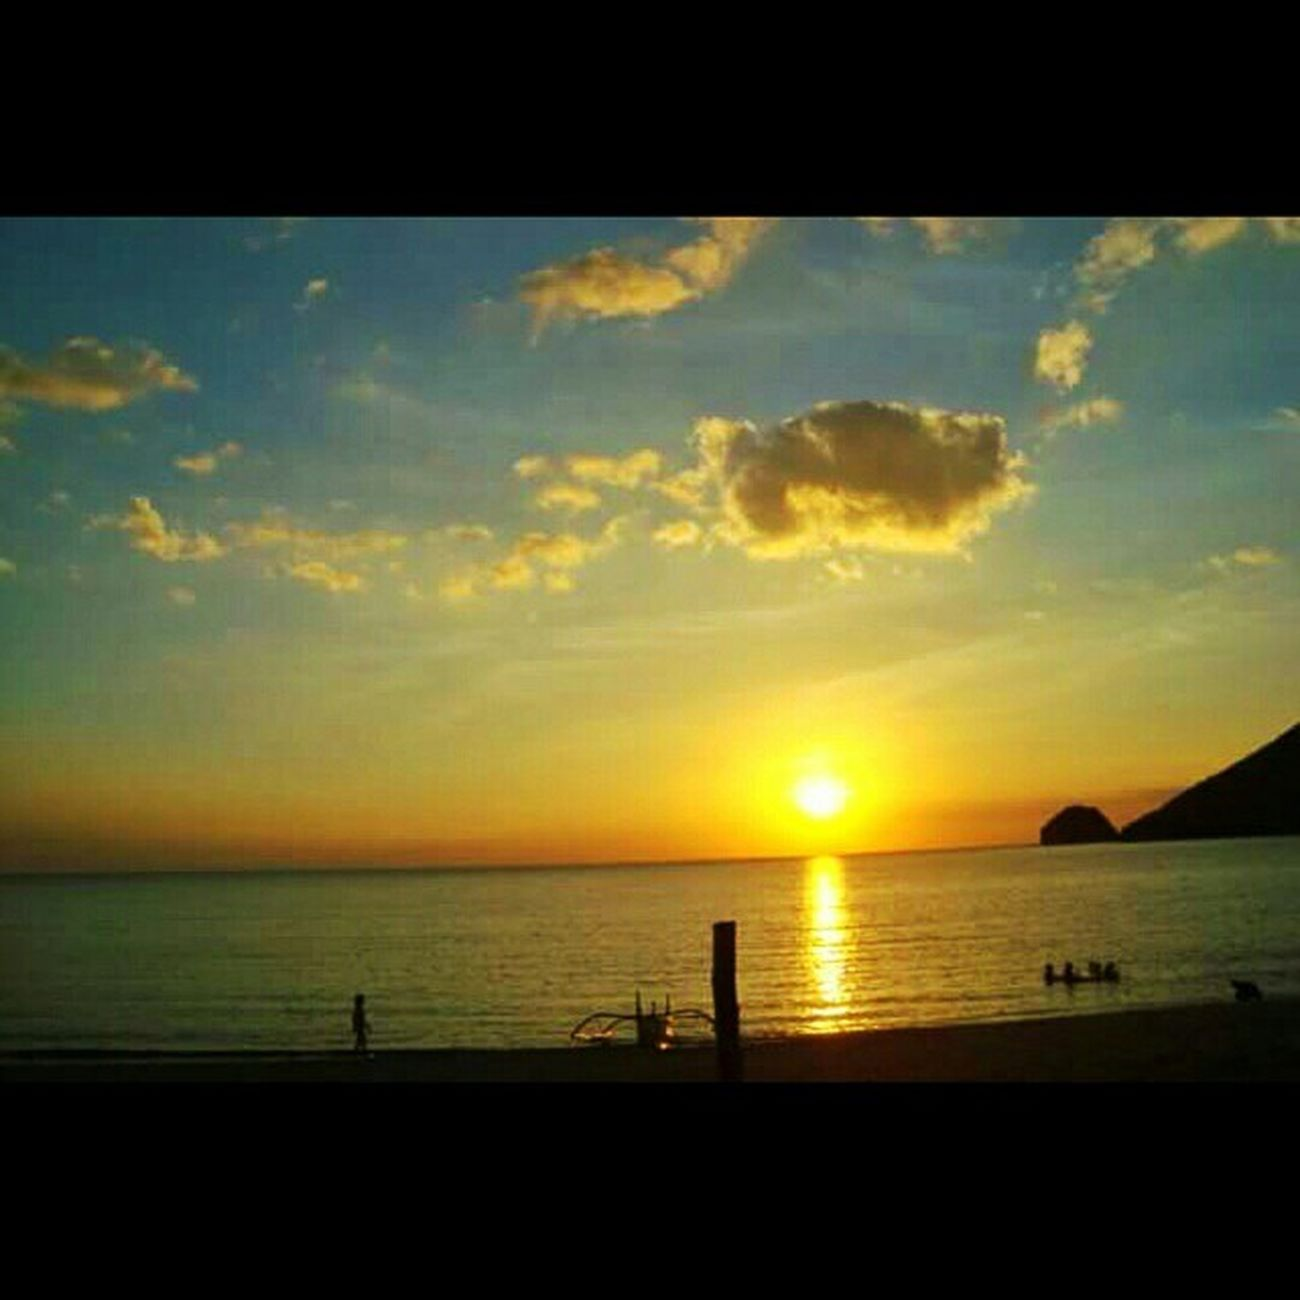 Different hues of 🌇 sunset @LetstagApp Anawangin Zambales Philippines Beach summer itsmorefuninthephilippines travel camping cove nature southcliff goodlife sand naturelovers wanderlust travelph instatravel beachlife bestshots_ph explorer iloveph lovephilippines islandhopping sunset travelogue12 sun globejetsetter lonelyplanet oneworldjustgo philippines pinas